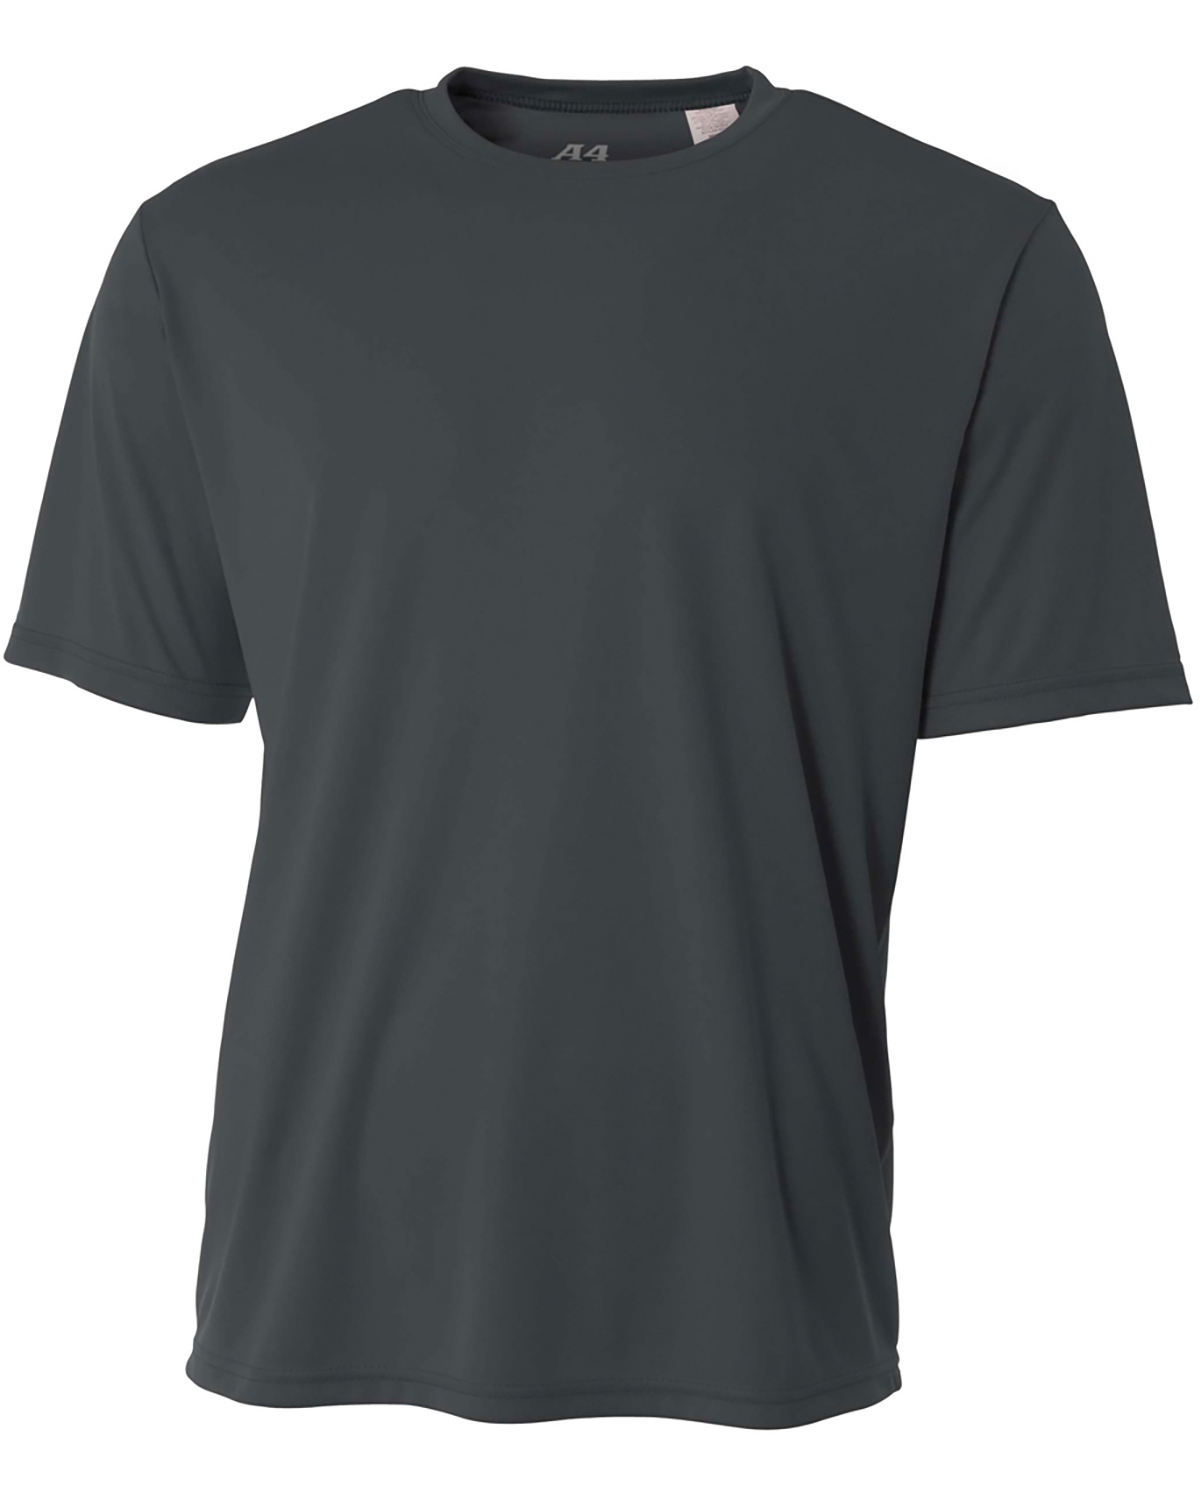 Youth Cooling Performance T-Shirt